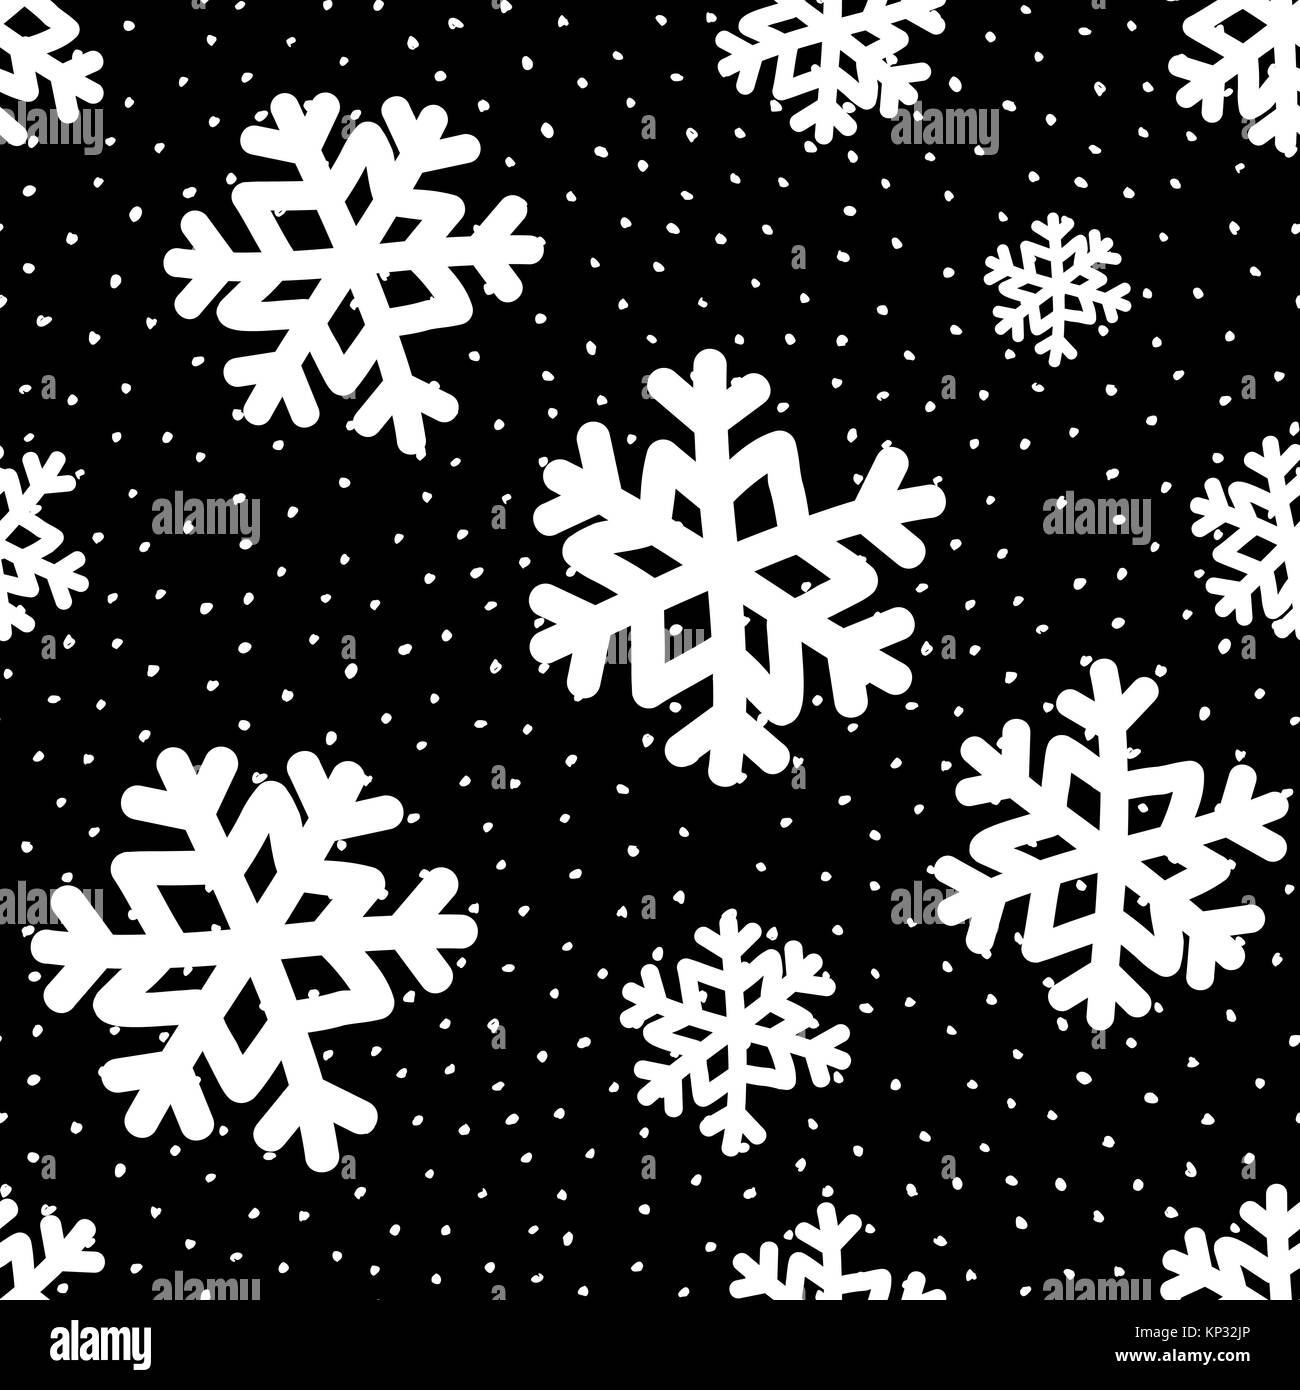 seamless repeating pattern with white snowflakes on black background KP32JP